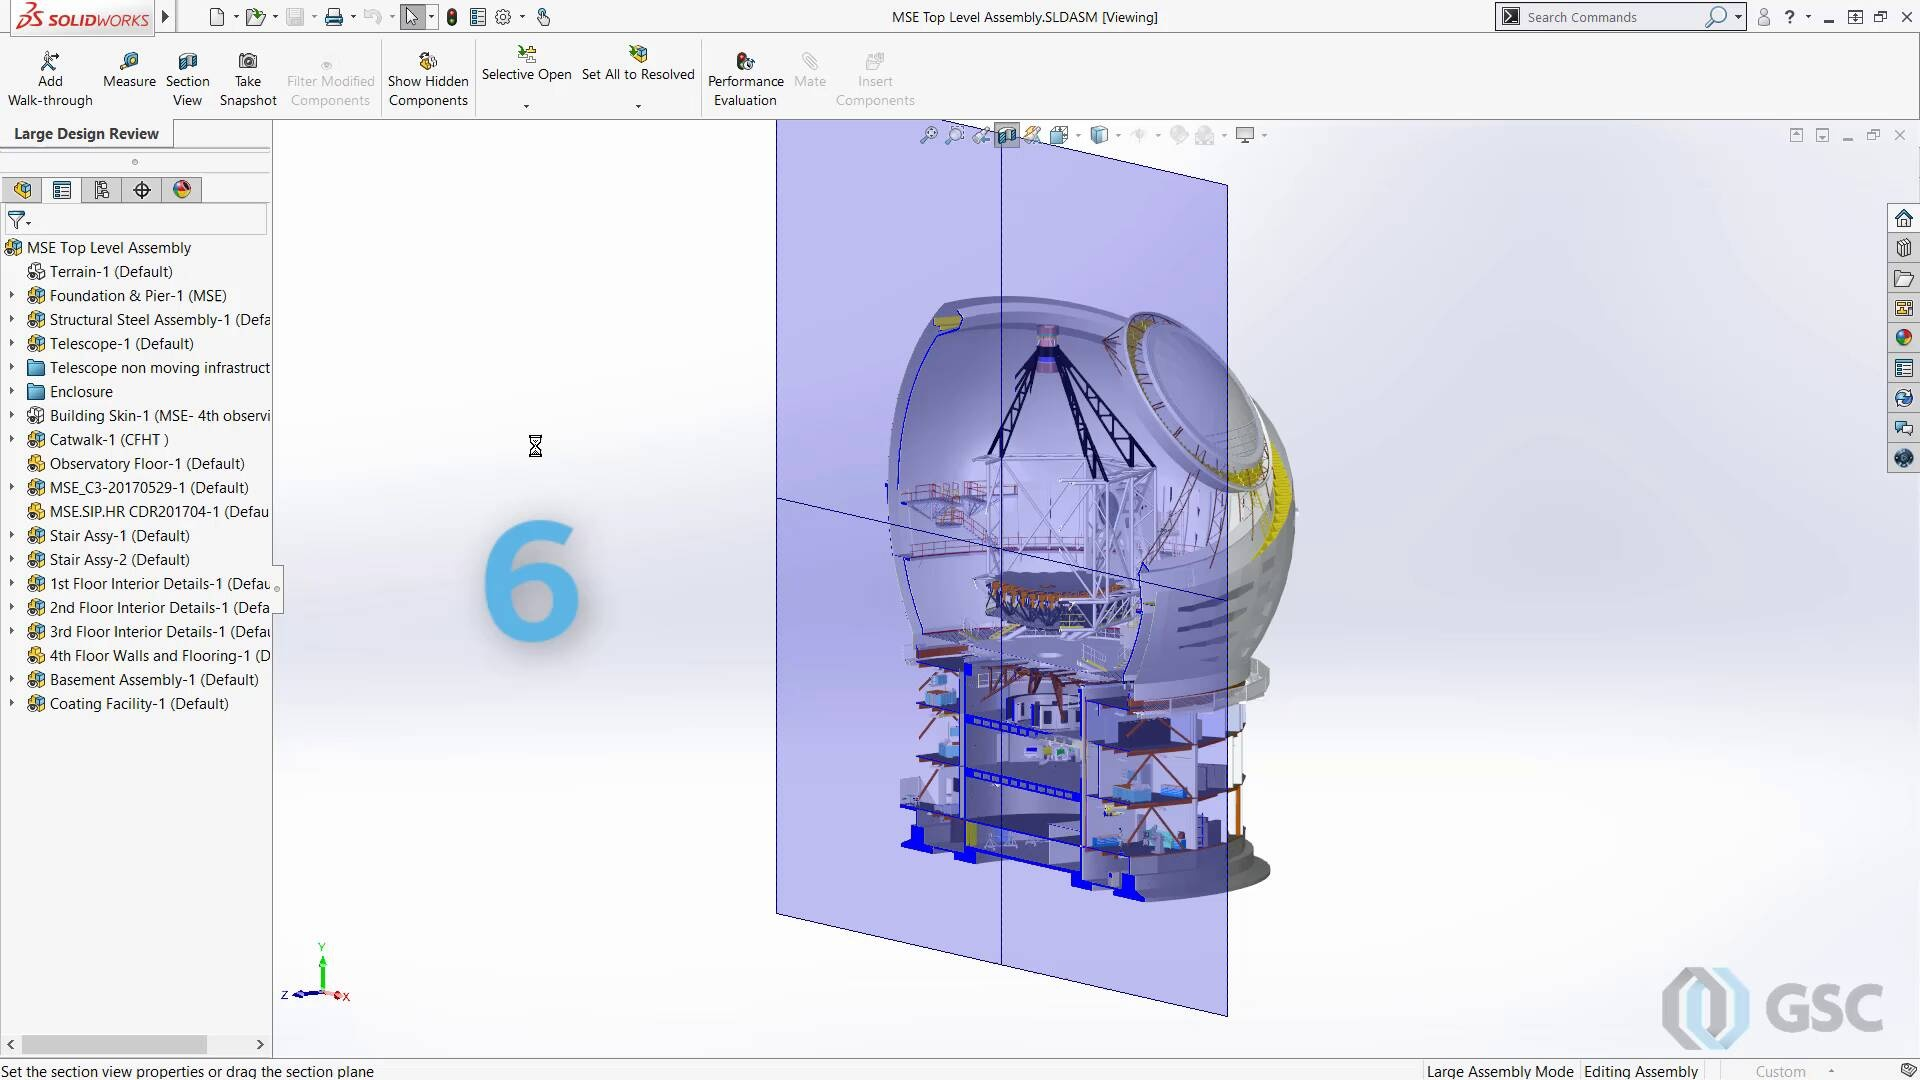 SOLIDWORKS 2019 LDR and New Graphics Pipeline v5